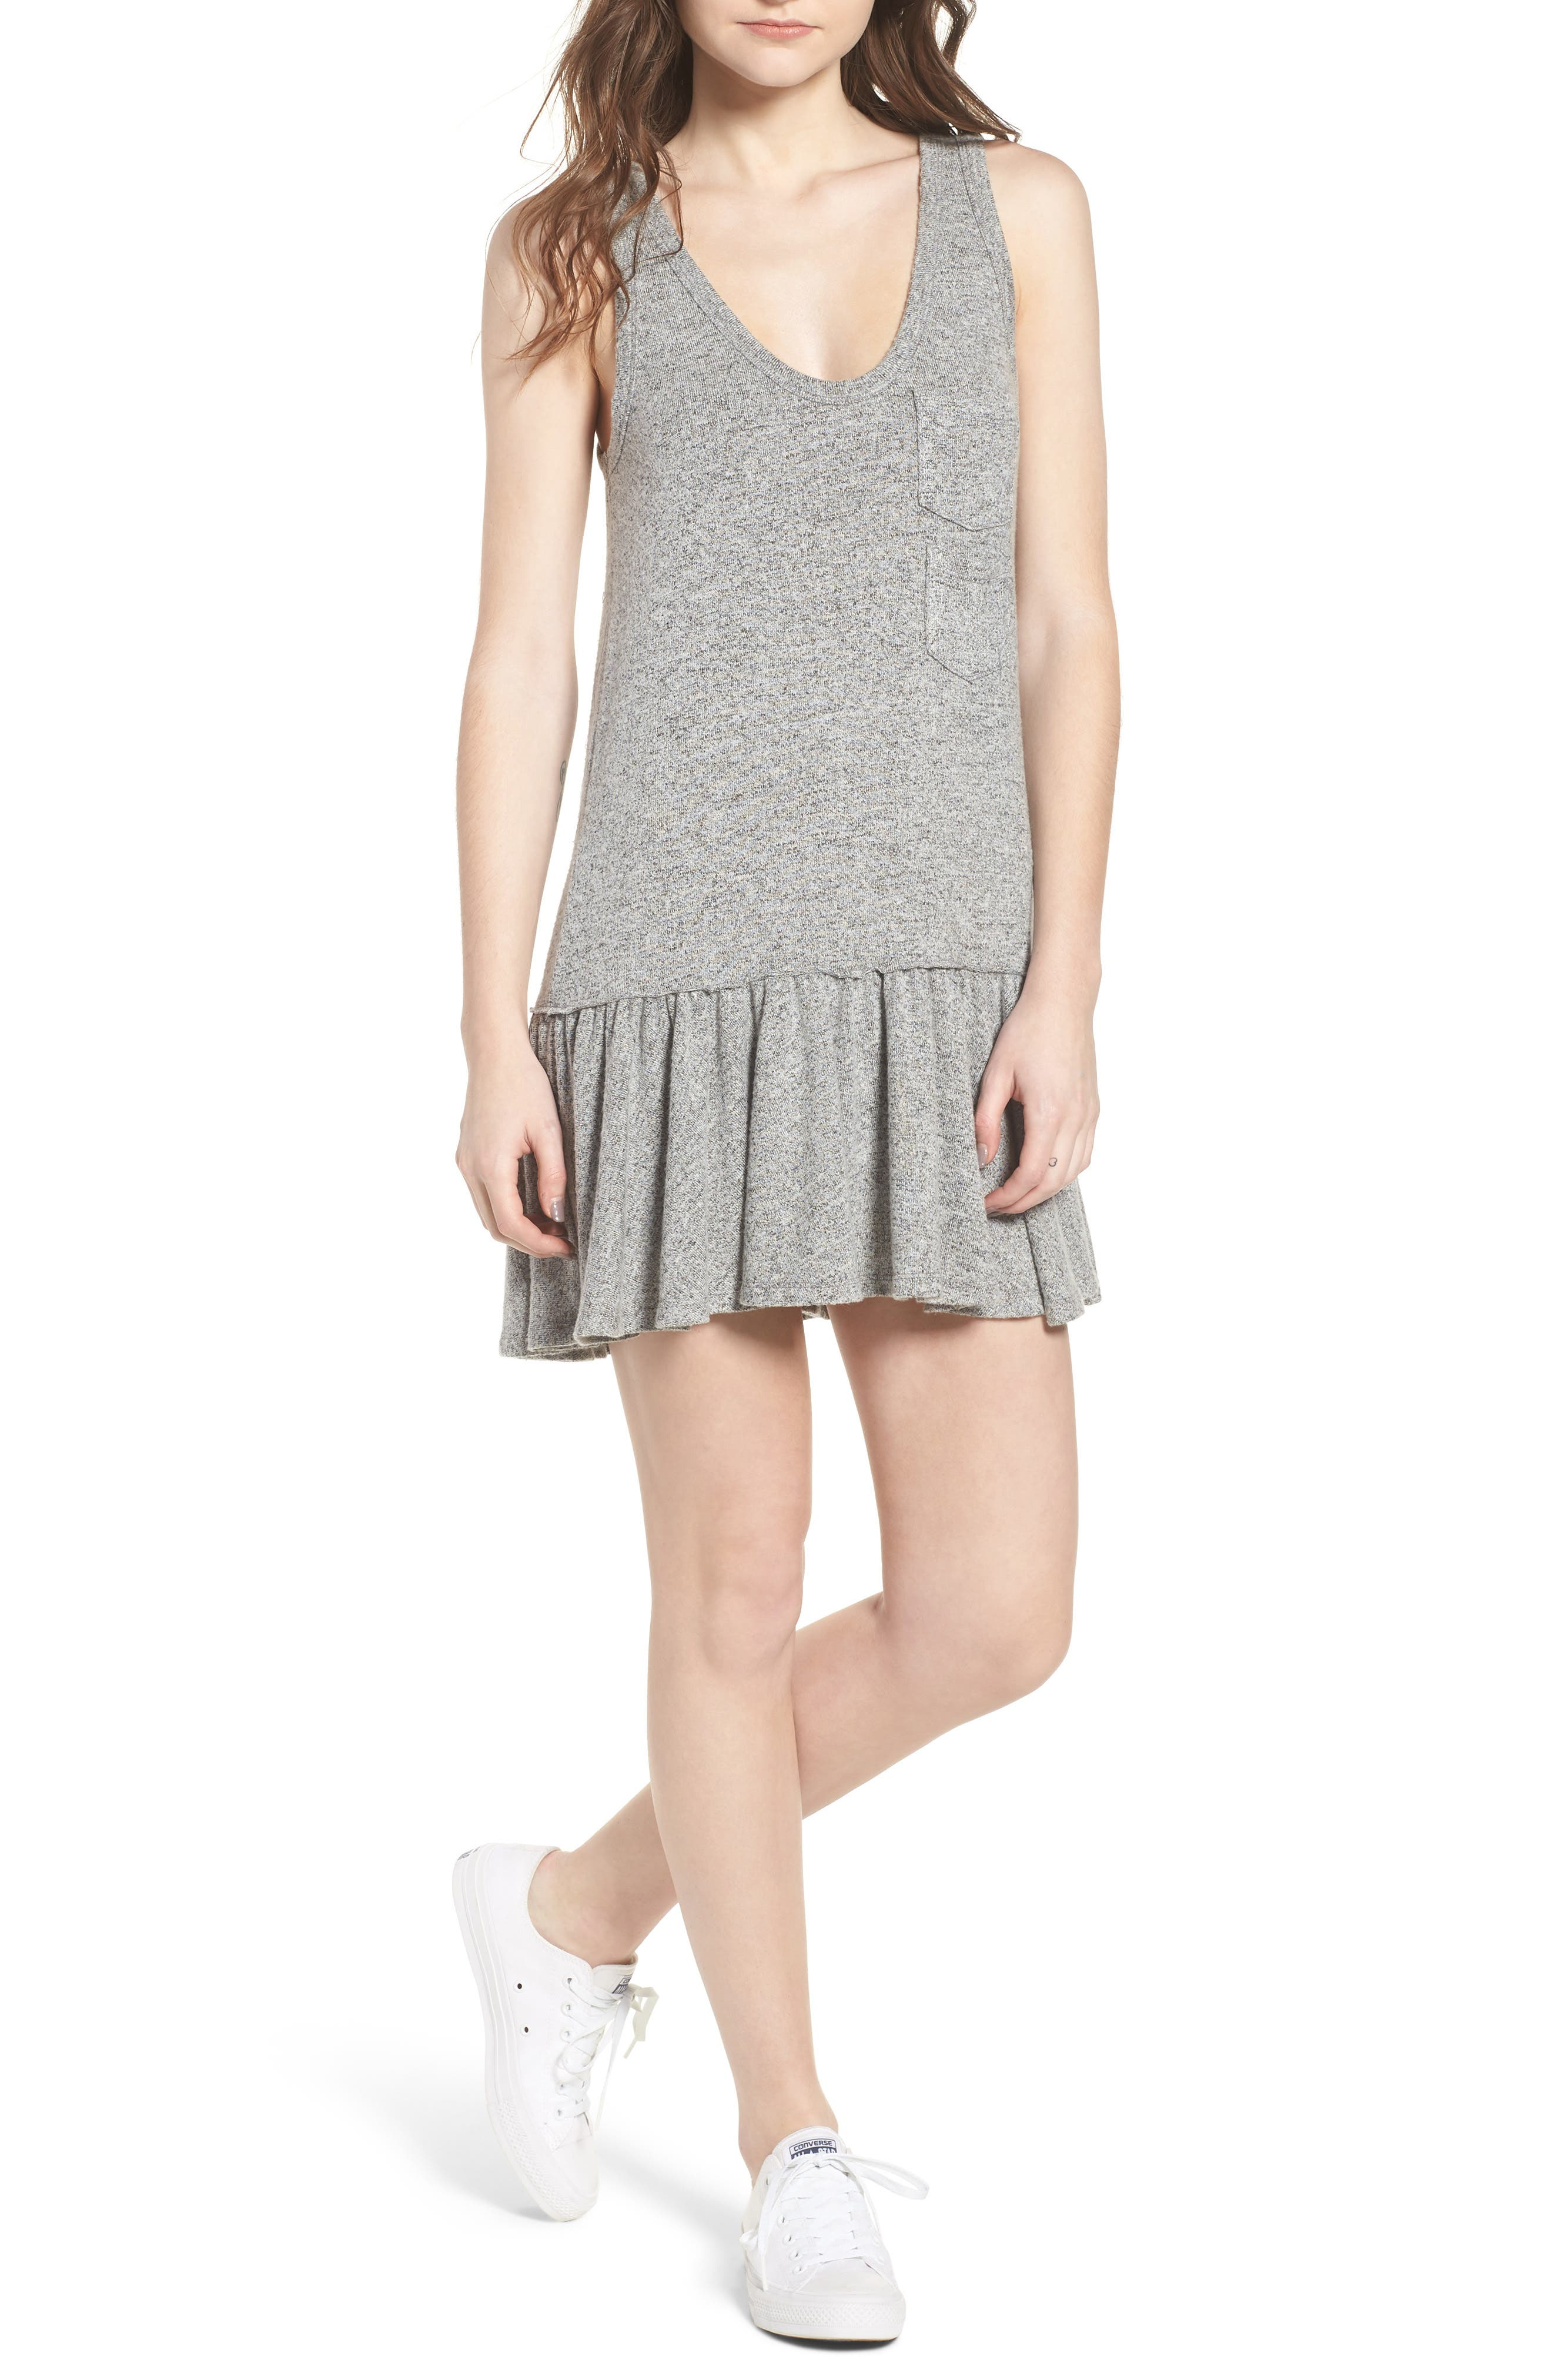 Summer in the City Tank Dress,                             Main thumbnail 1, color,                             Heather